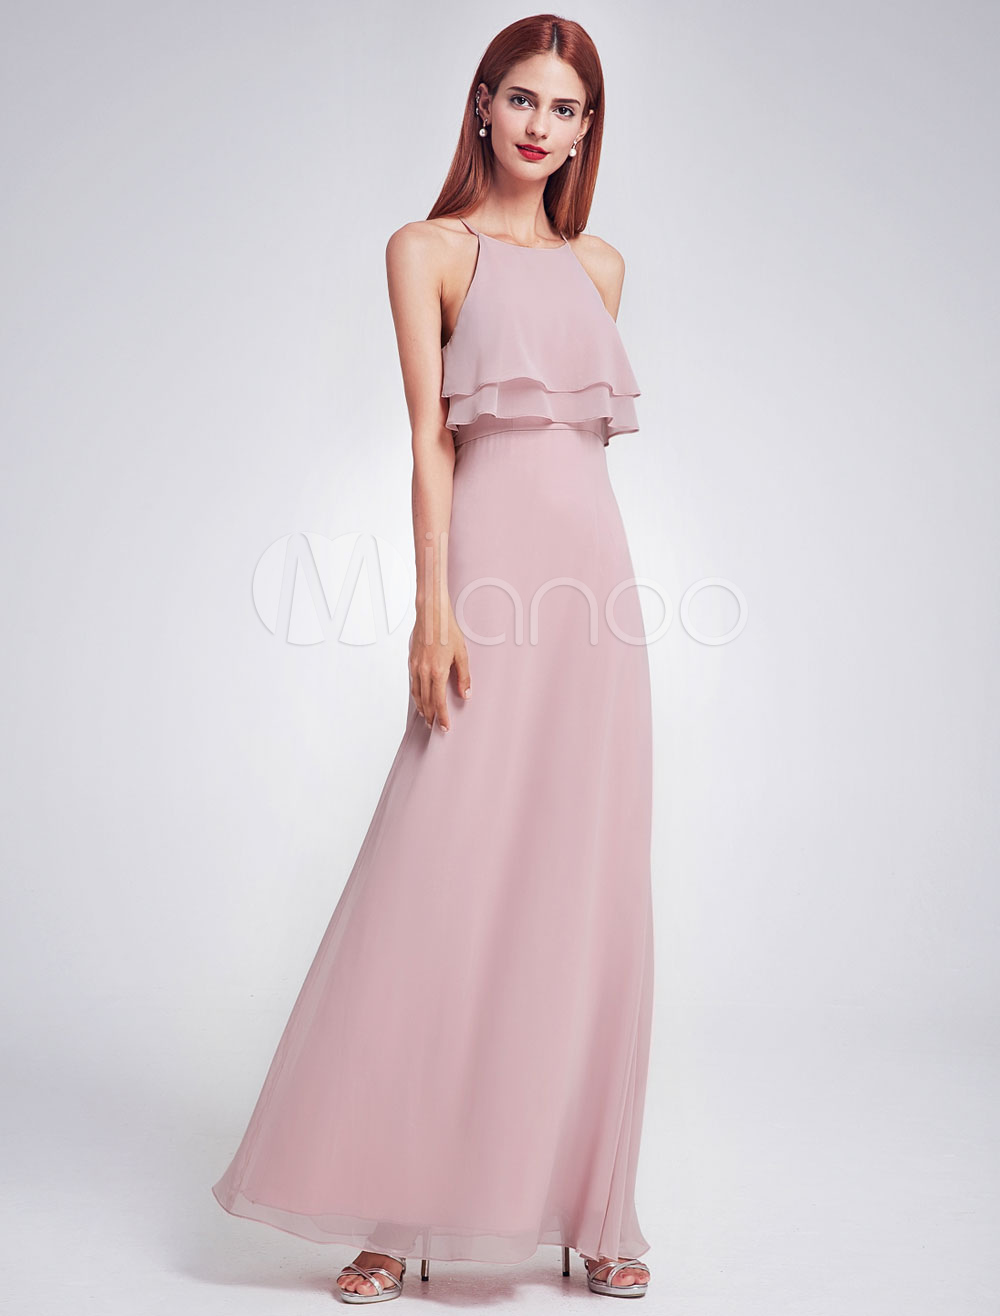 Buy Chiffon Bridesmaid Dress Long Halter Sleeveless Layered Prom Dresses Cameo Pink A Line Floor Length Party Dresses for $109.99 in Milanoo store